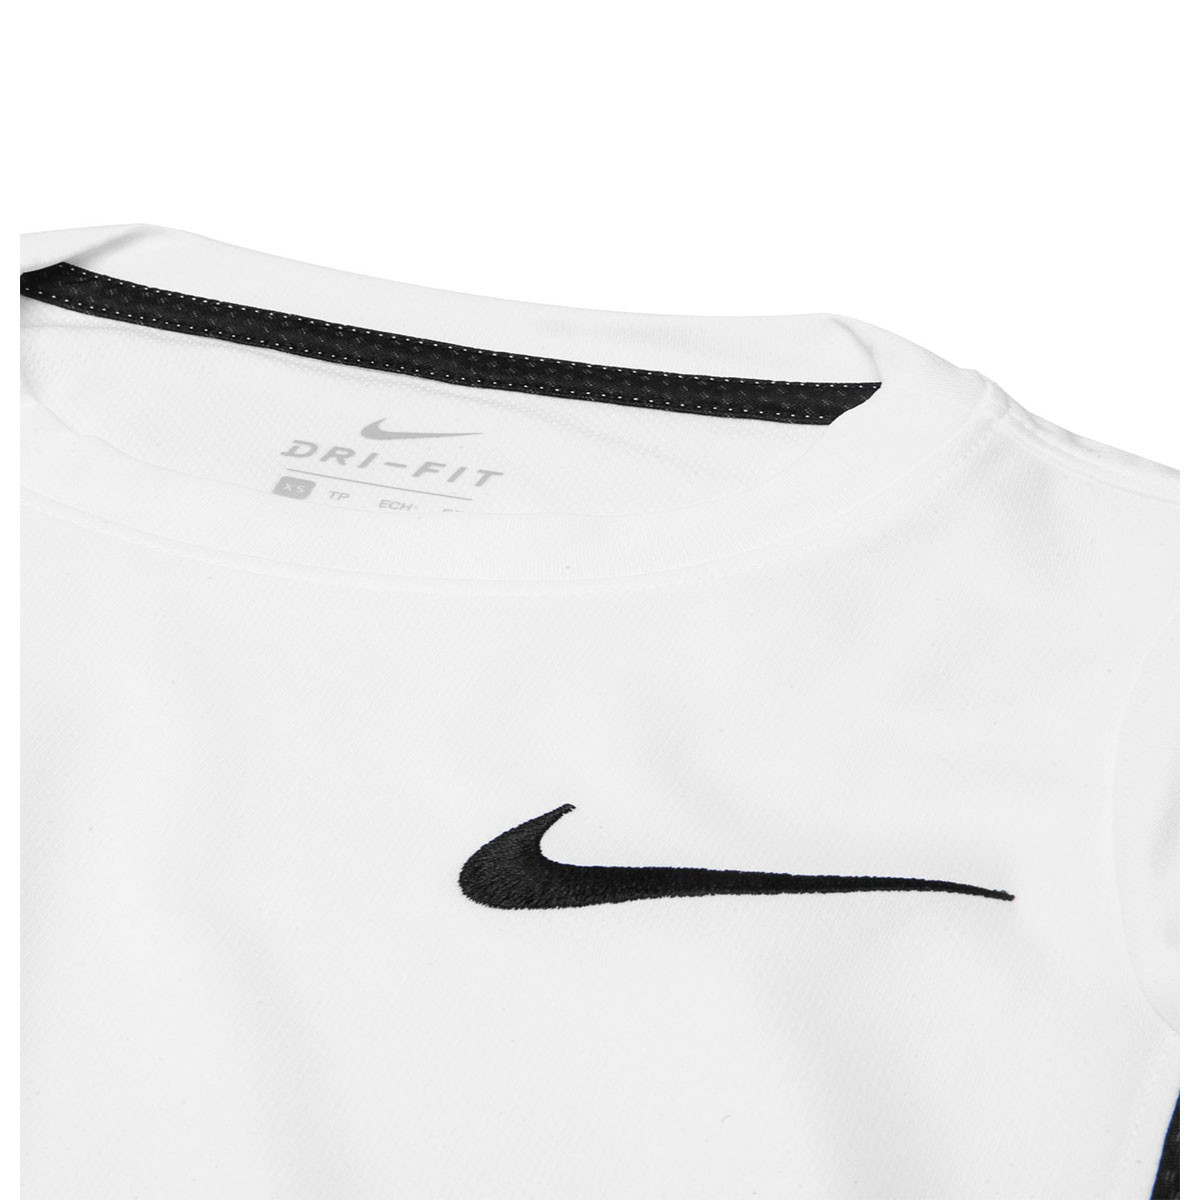 Camiseta Nike Dri-FIT Top SS Infantil Branco